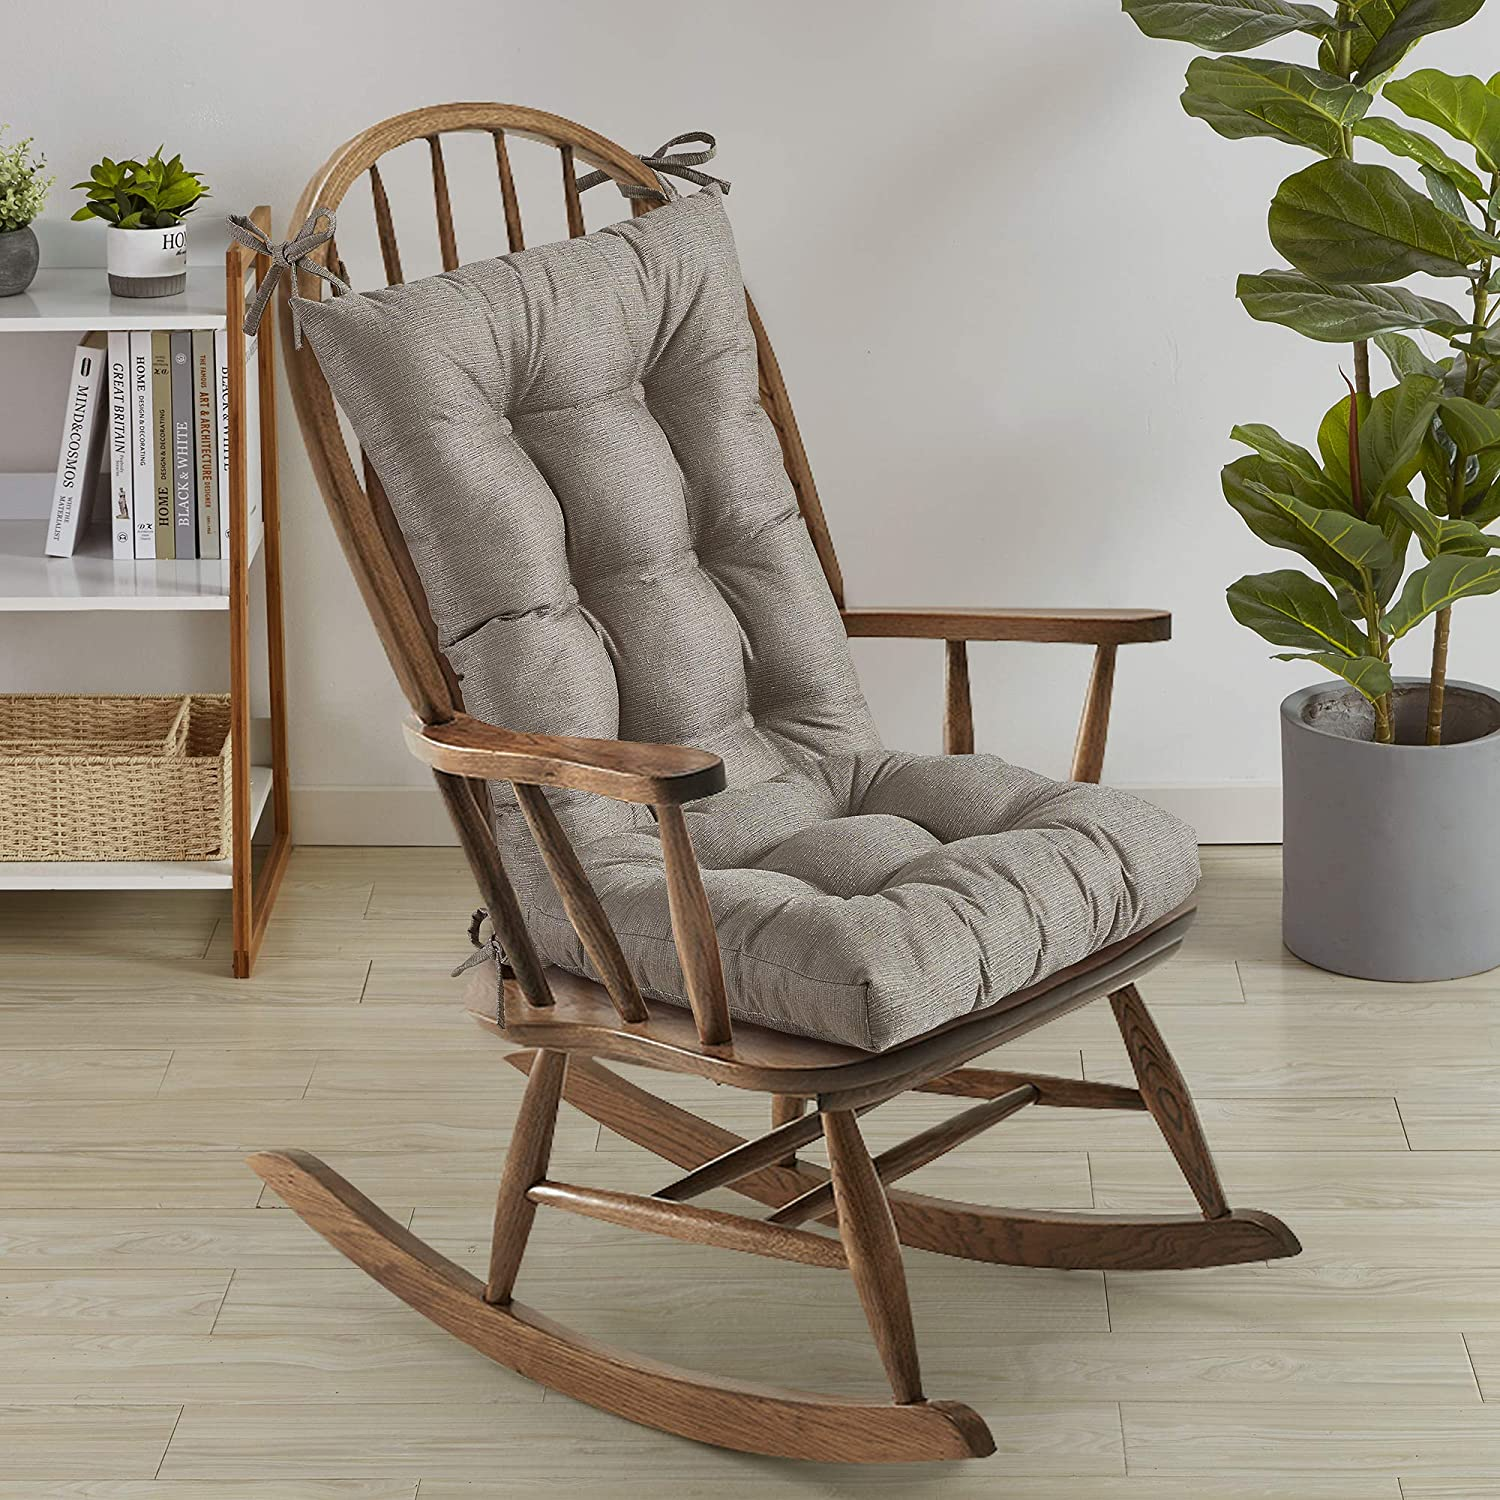 """Sweet Home Collection Rocking Chair Cushion Premium Tufted Pads Non Skid Slip Backed Set of Upper and Lower with Ties, 21"""" X 17""""/17"""" X 17"""", Taupe"""